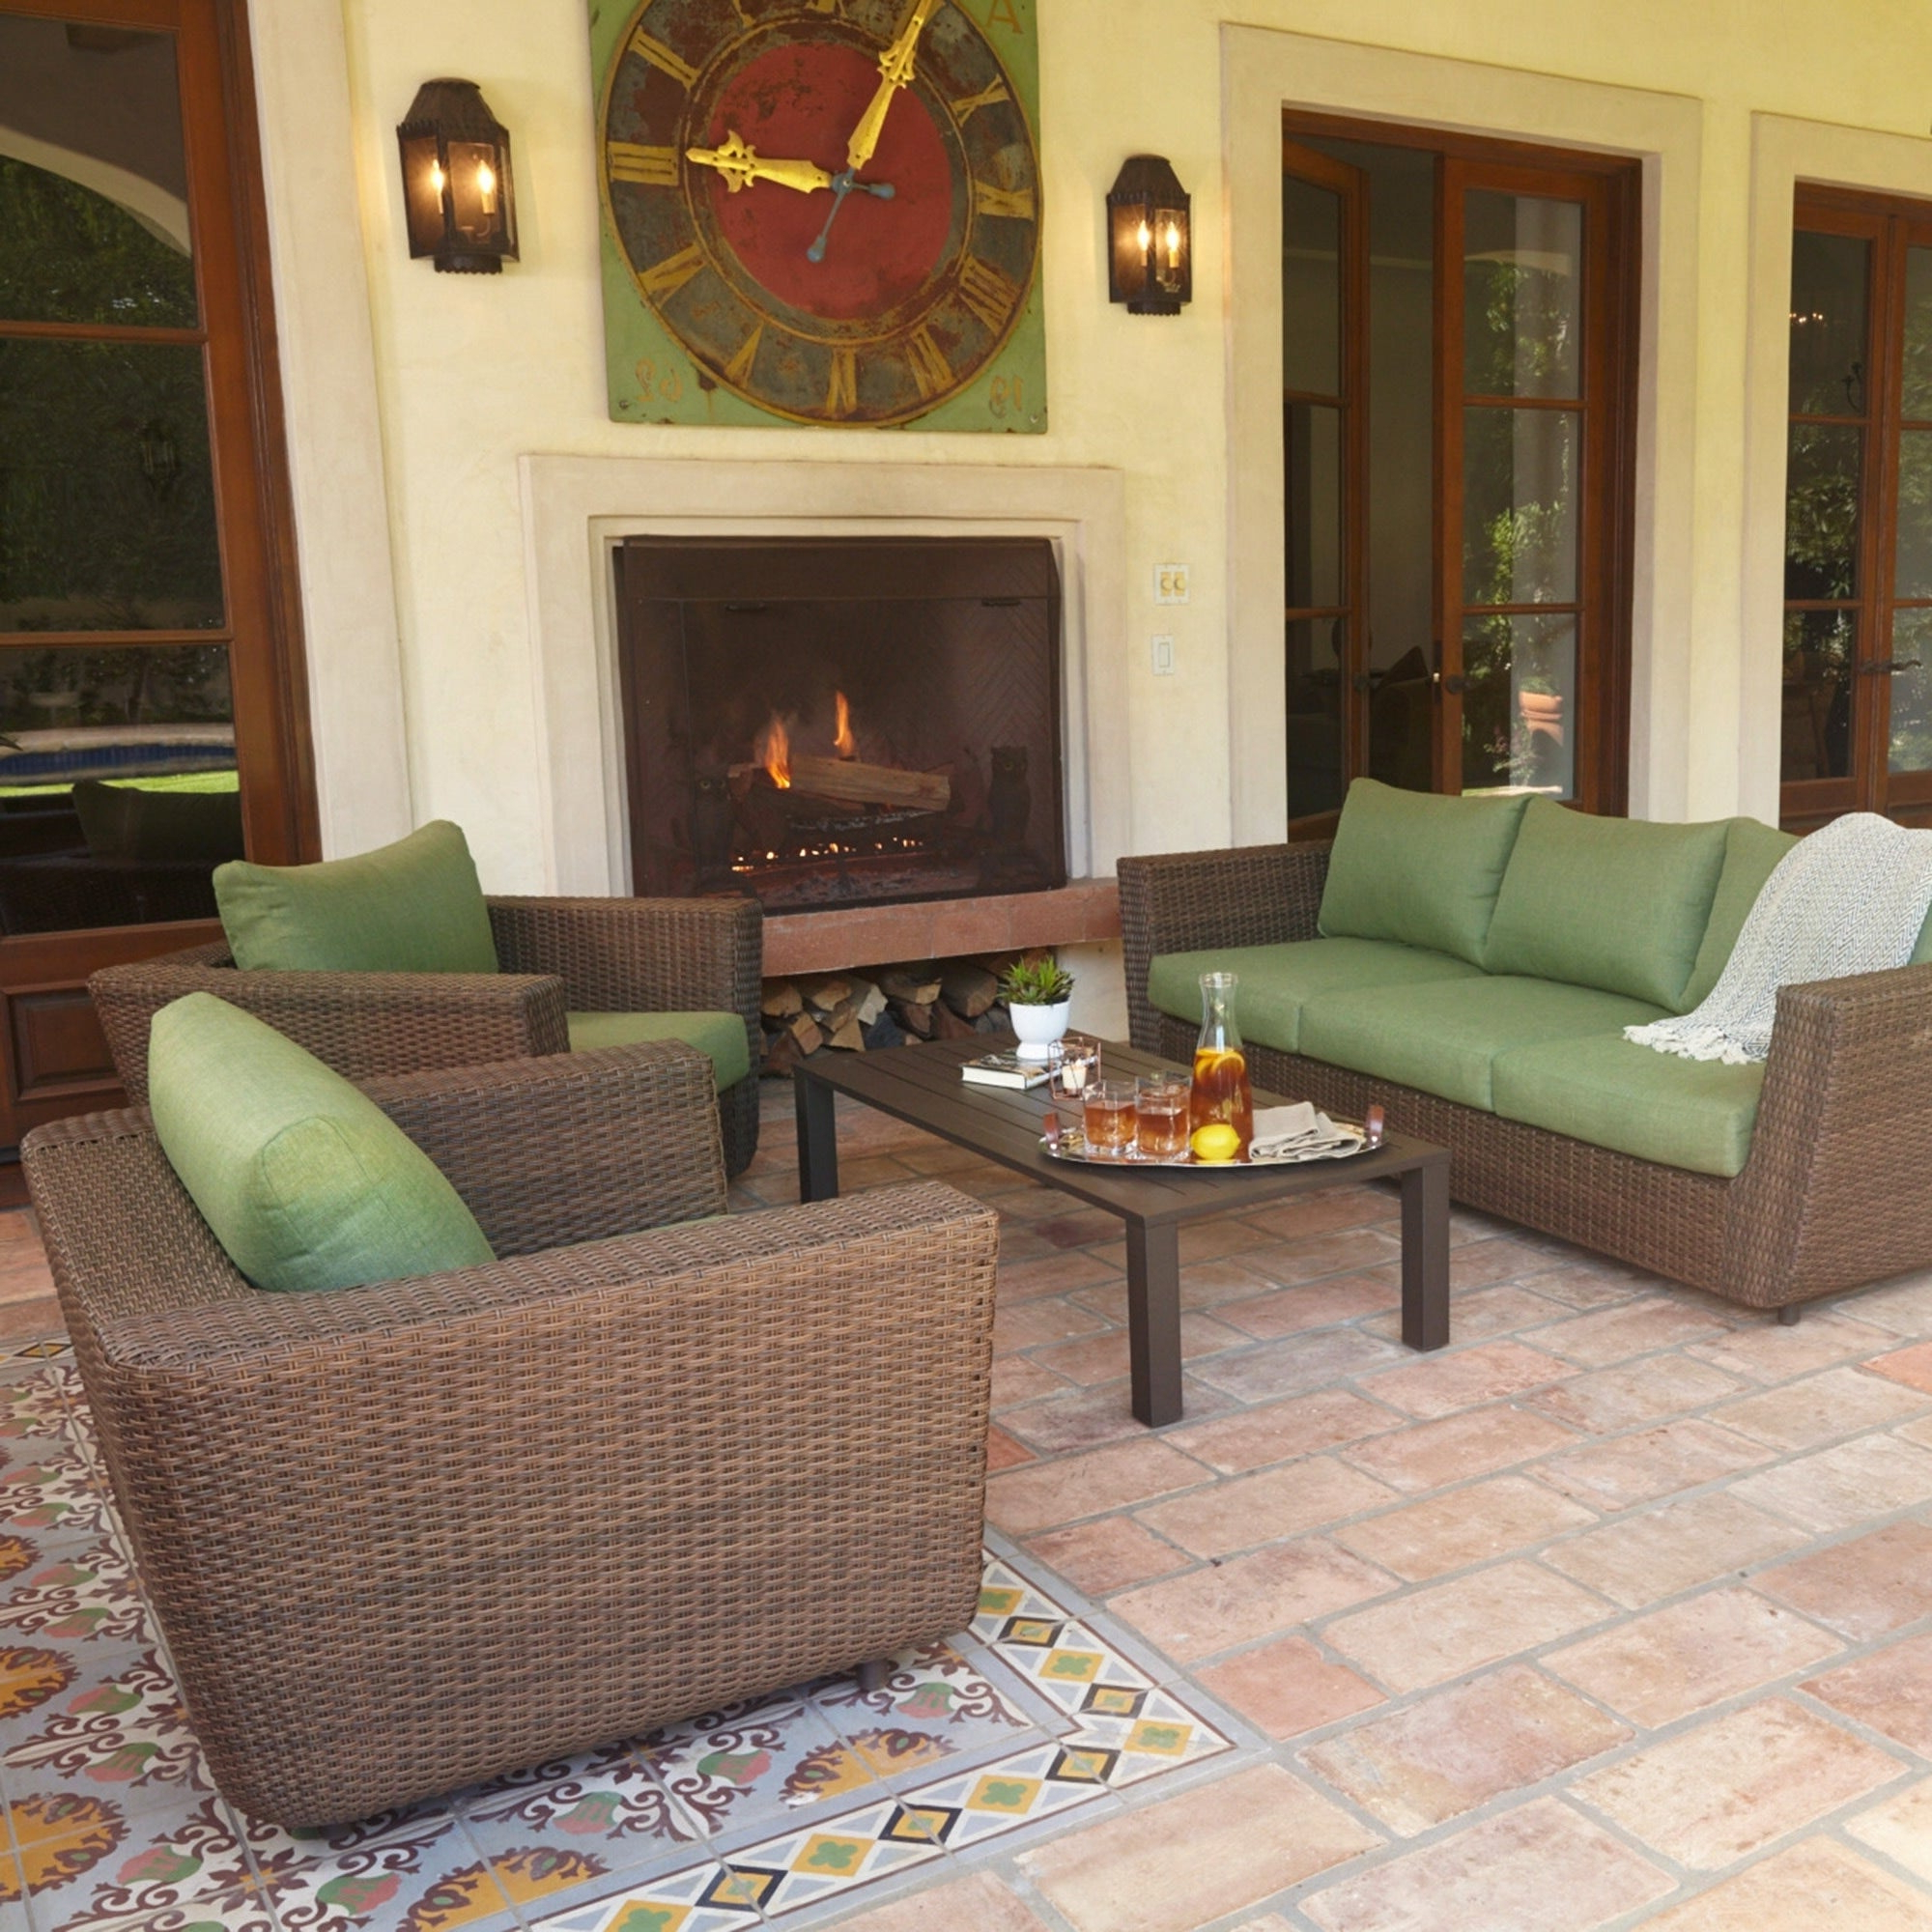 Greta Living Patio Sectionals With Cushions Regarding Most Recent Greta Outdoor 4 Piece Wicker Furniture Set, 3 Seat Sofa And Lounge Chairs  With Green Cushions, Aluminum Frame (View 10 of 20)